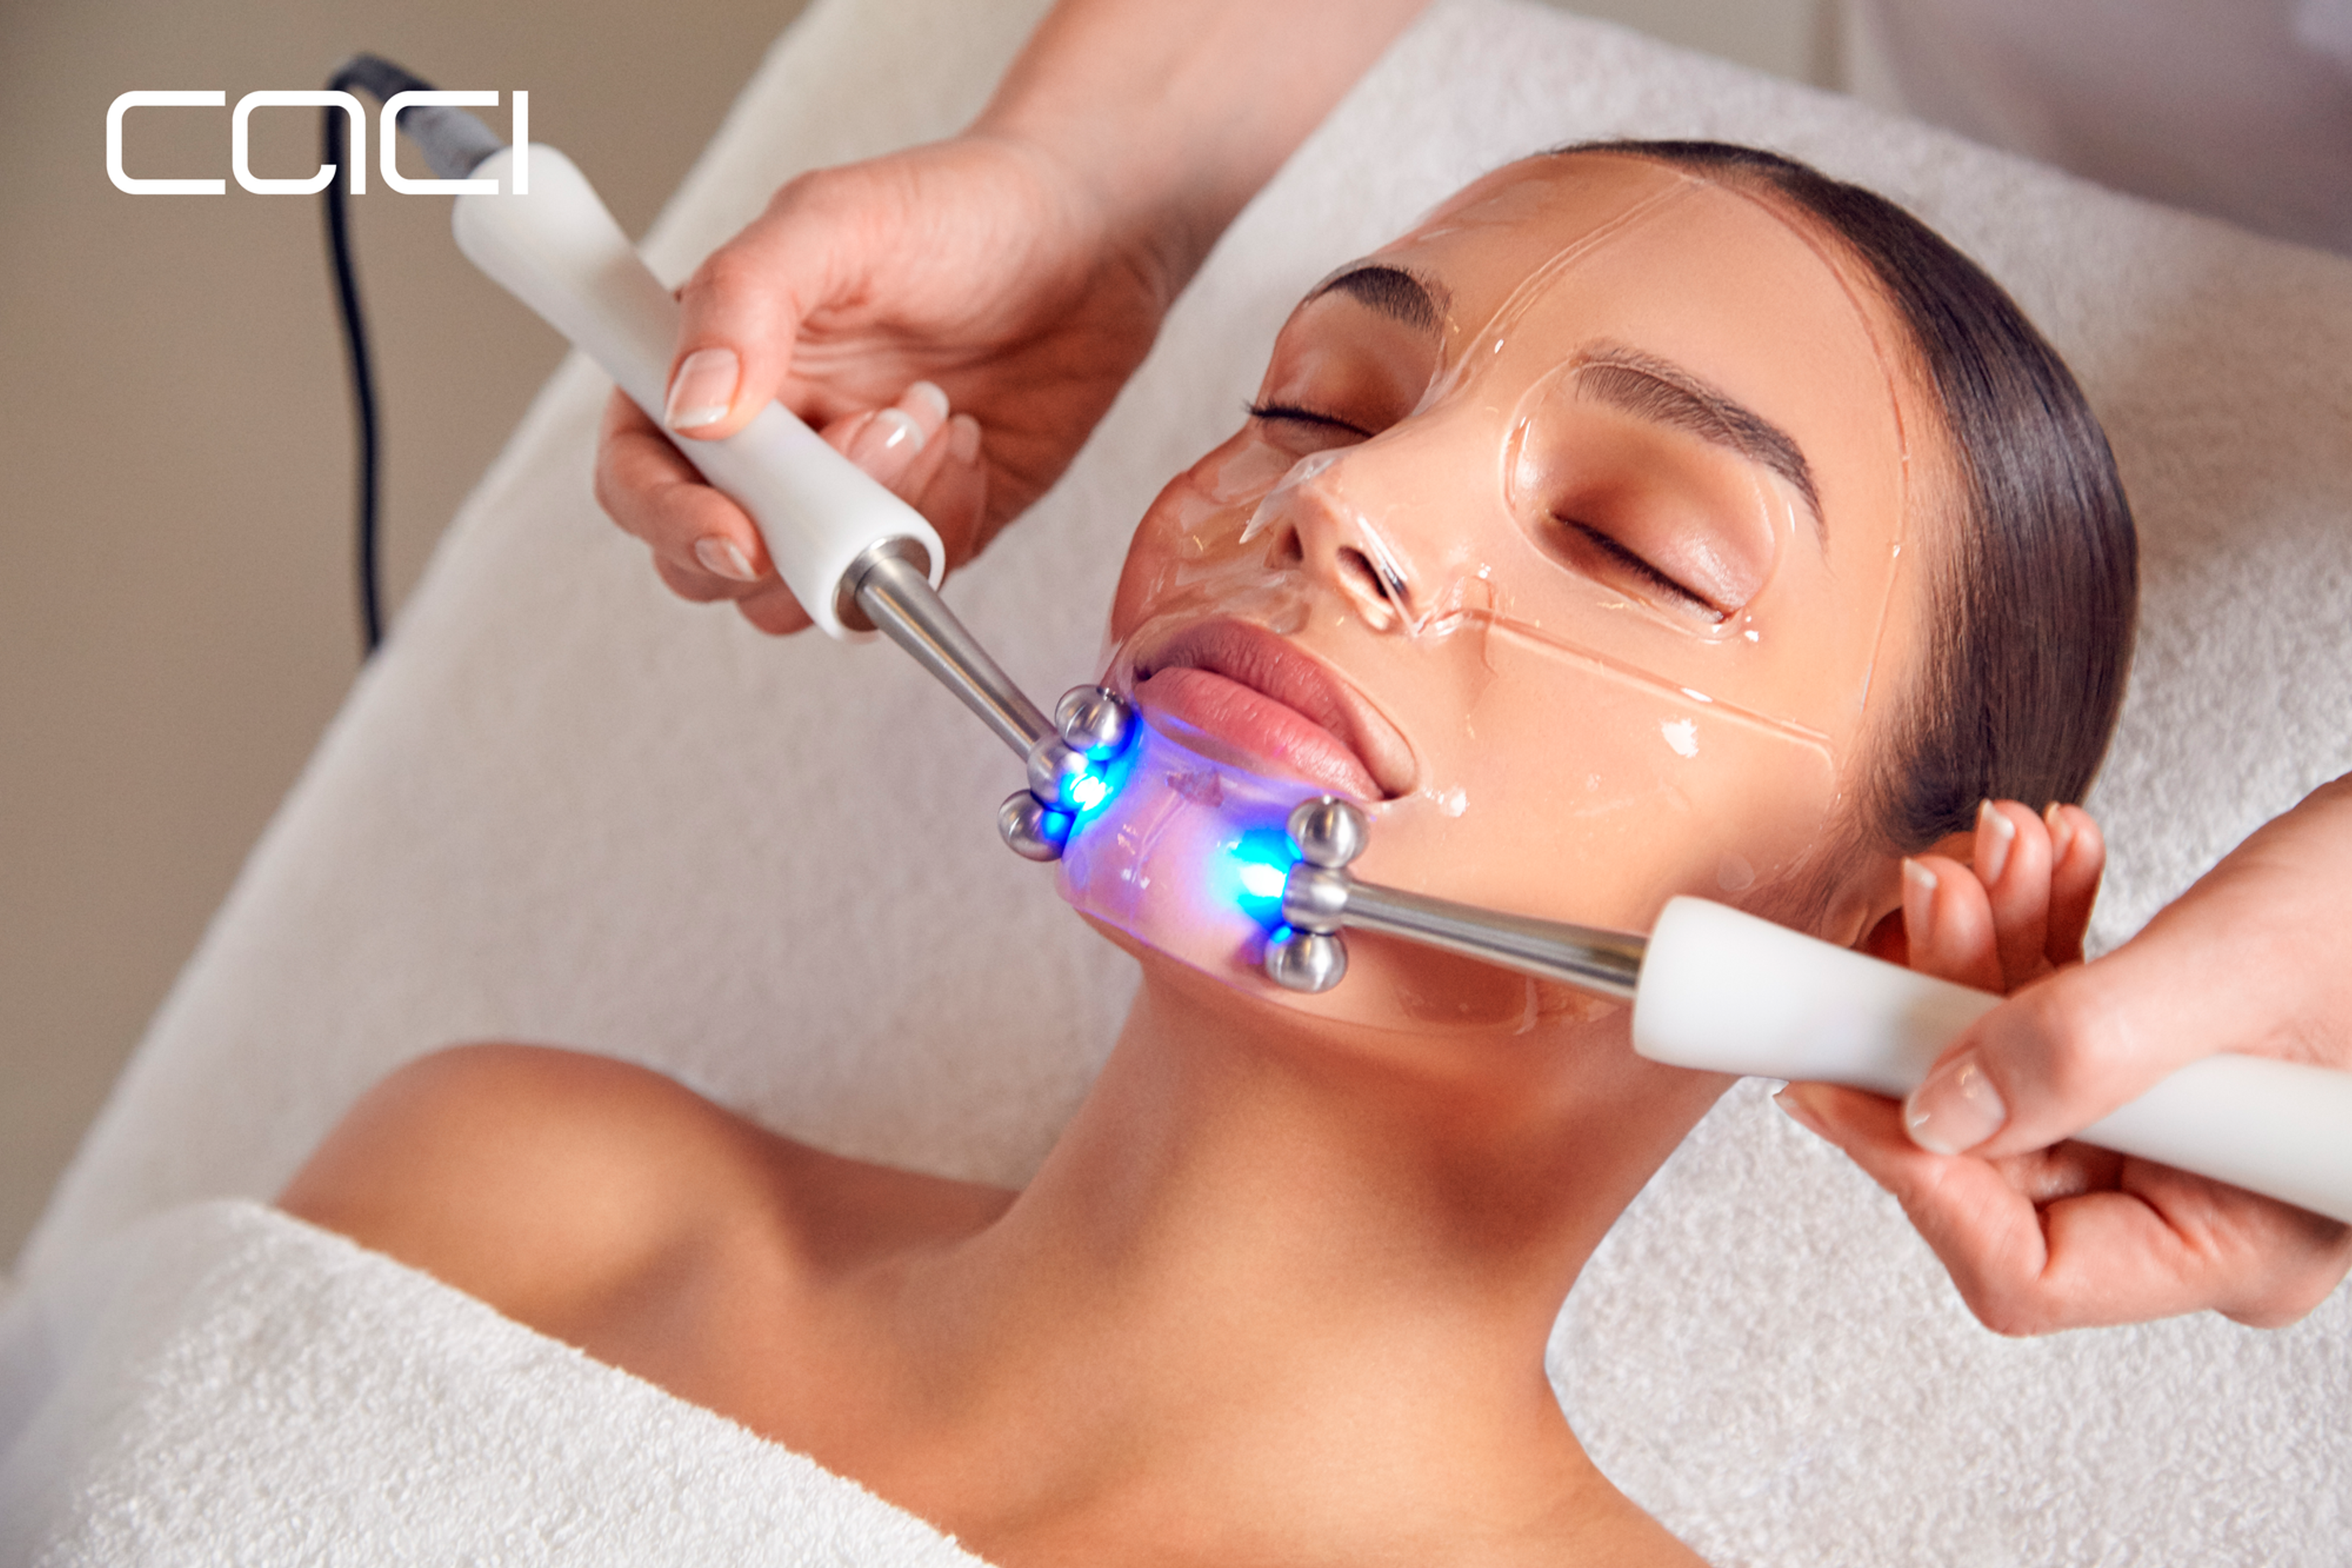 Hydra Mask Facial with LED lights